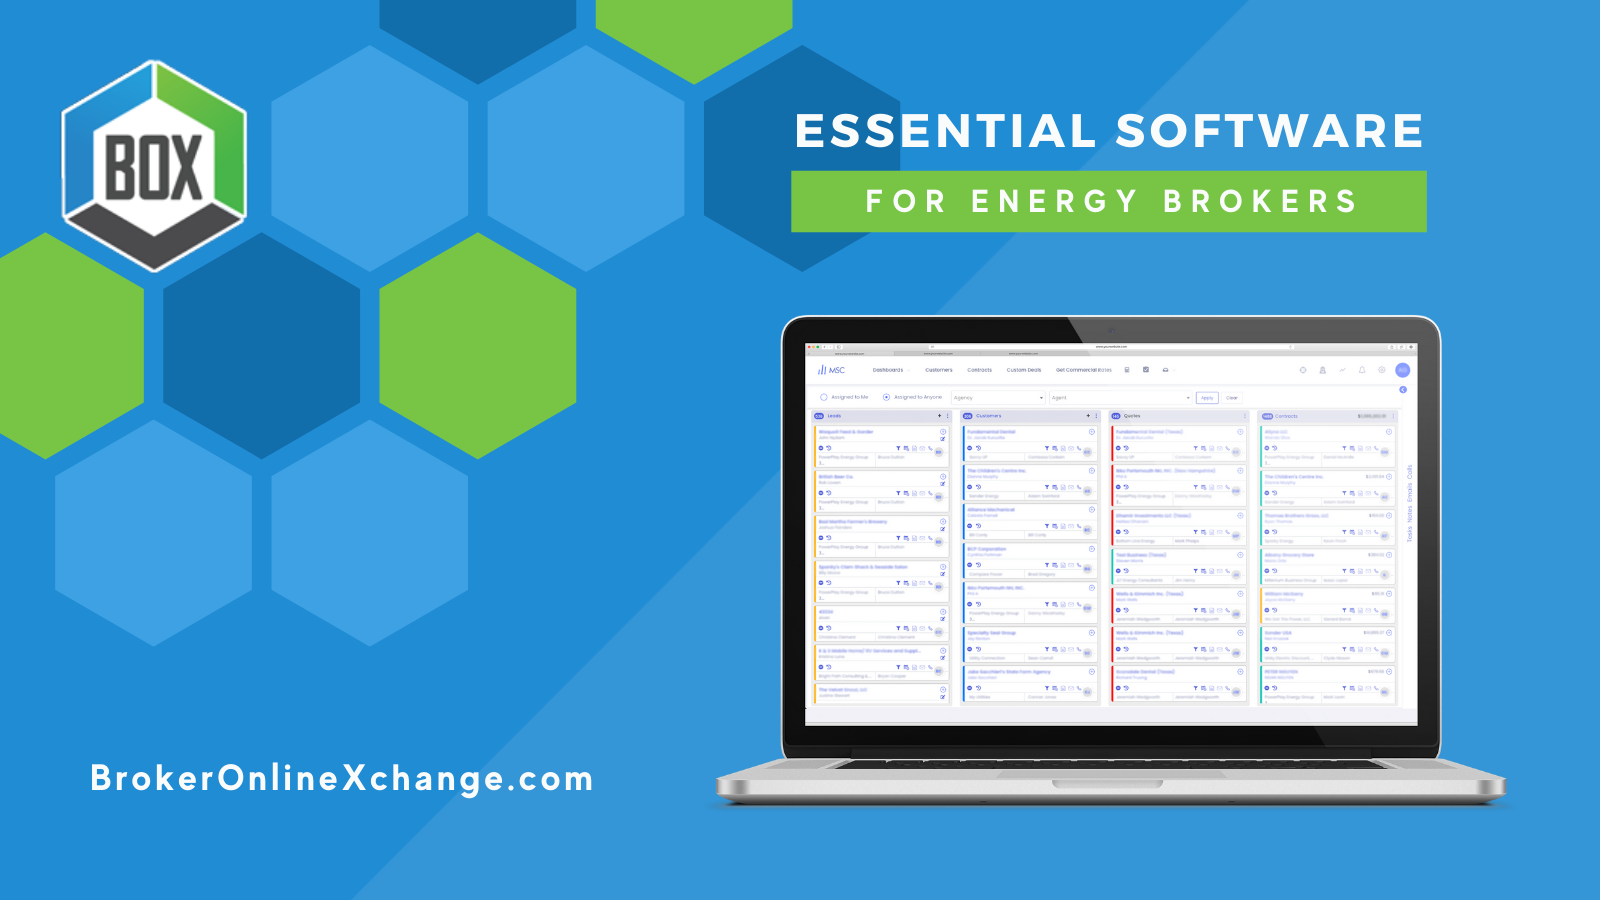 BOX Essential Software for Energy Brokers2